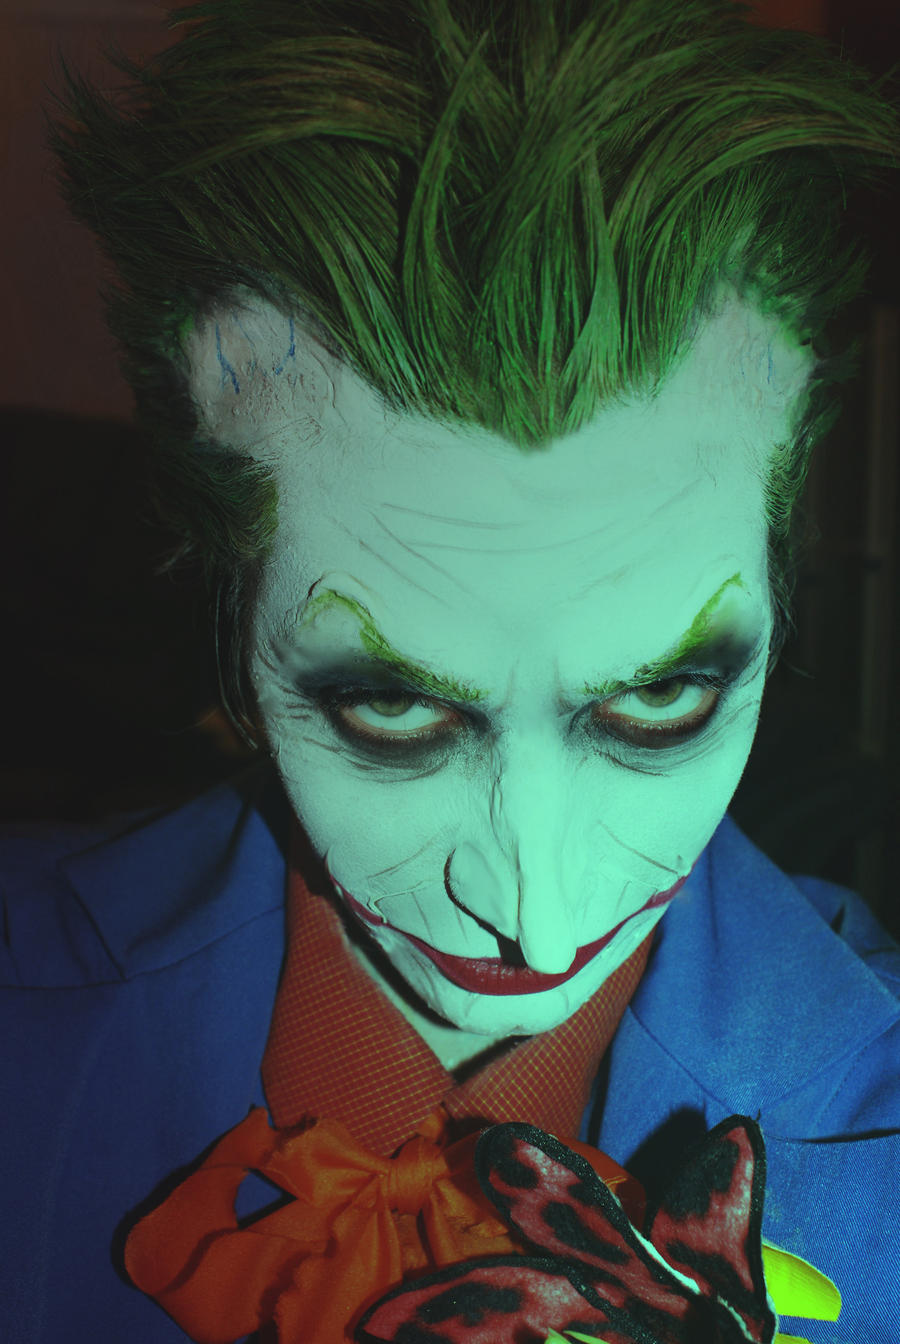 Female joker makeup